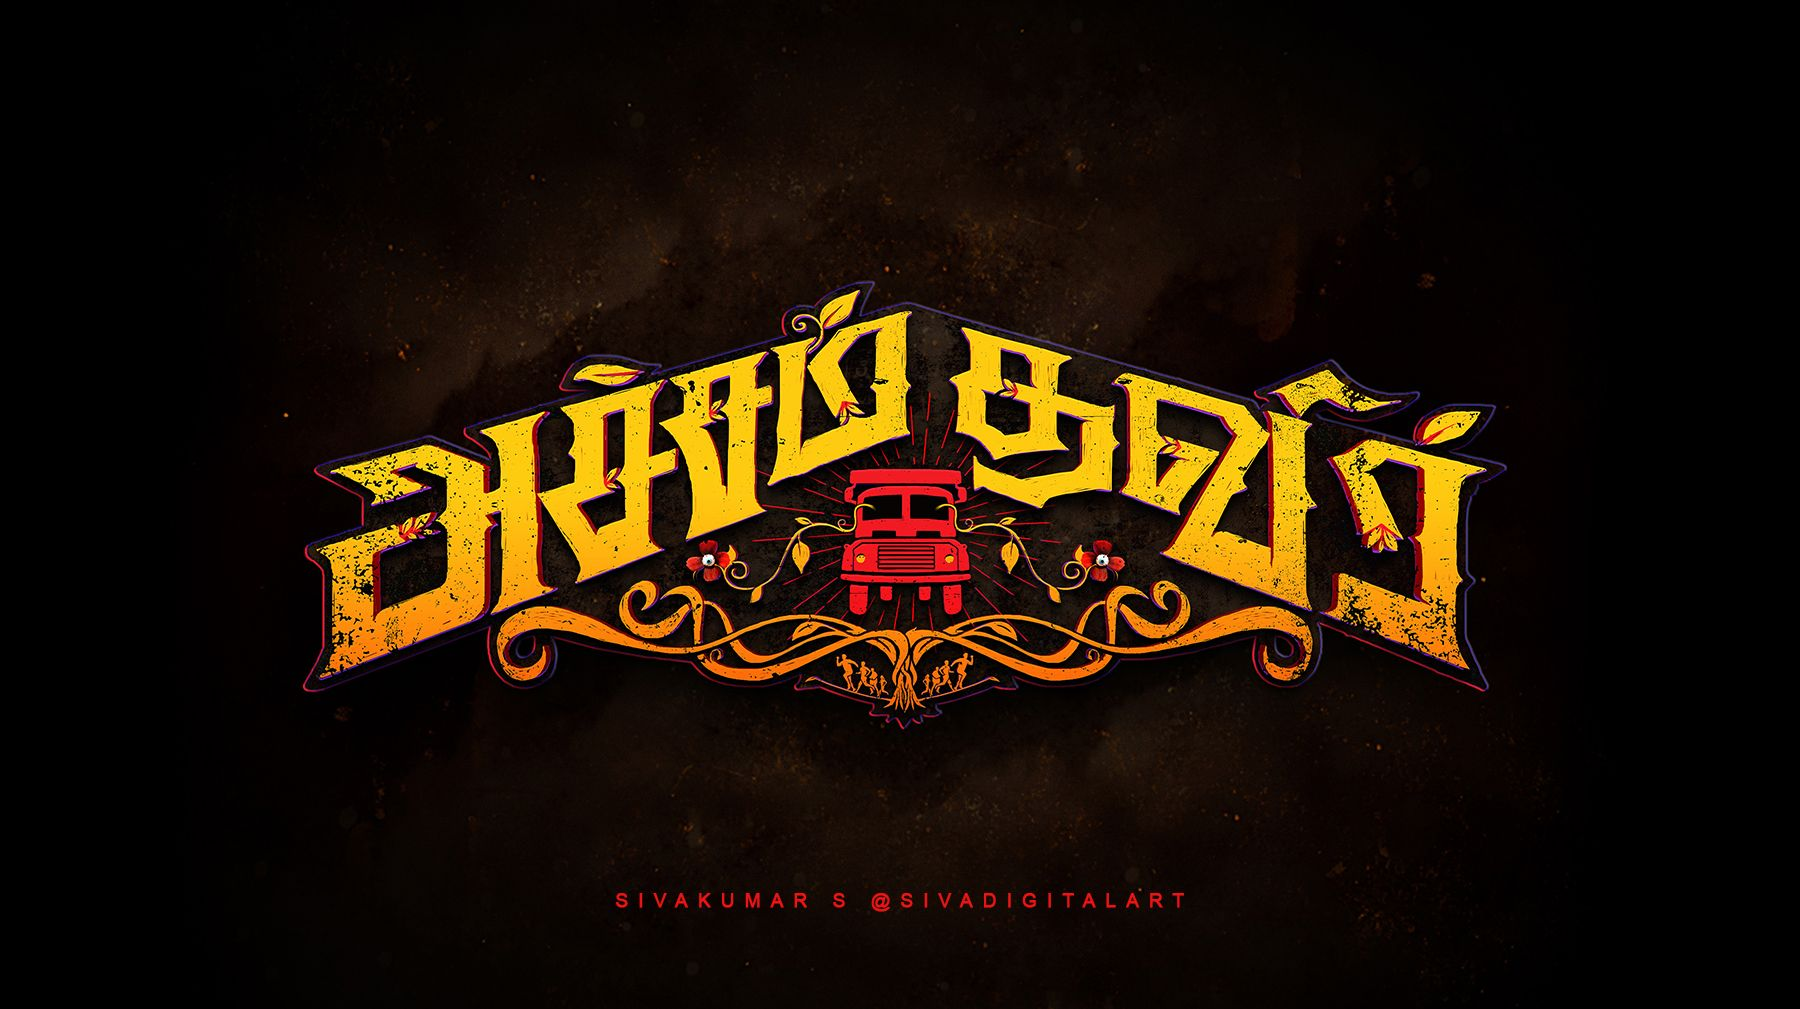 Title design for an upcoming tamil film Atcham Thavir  A